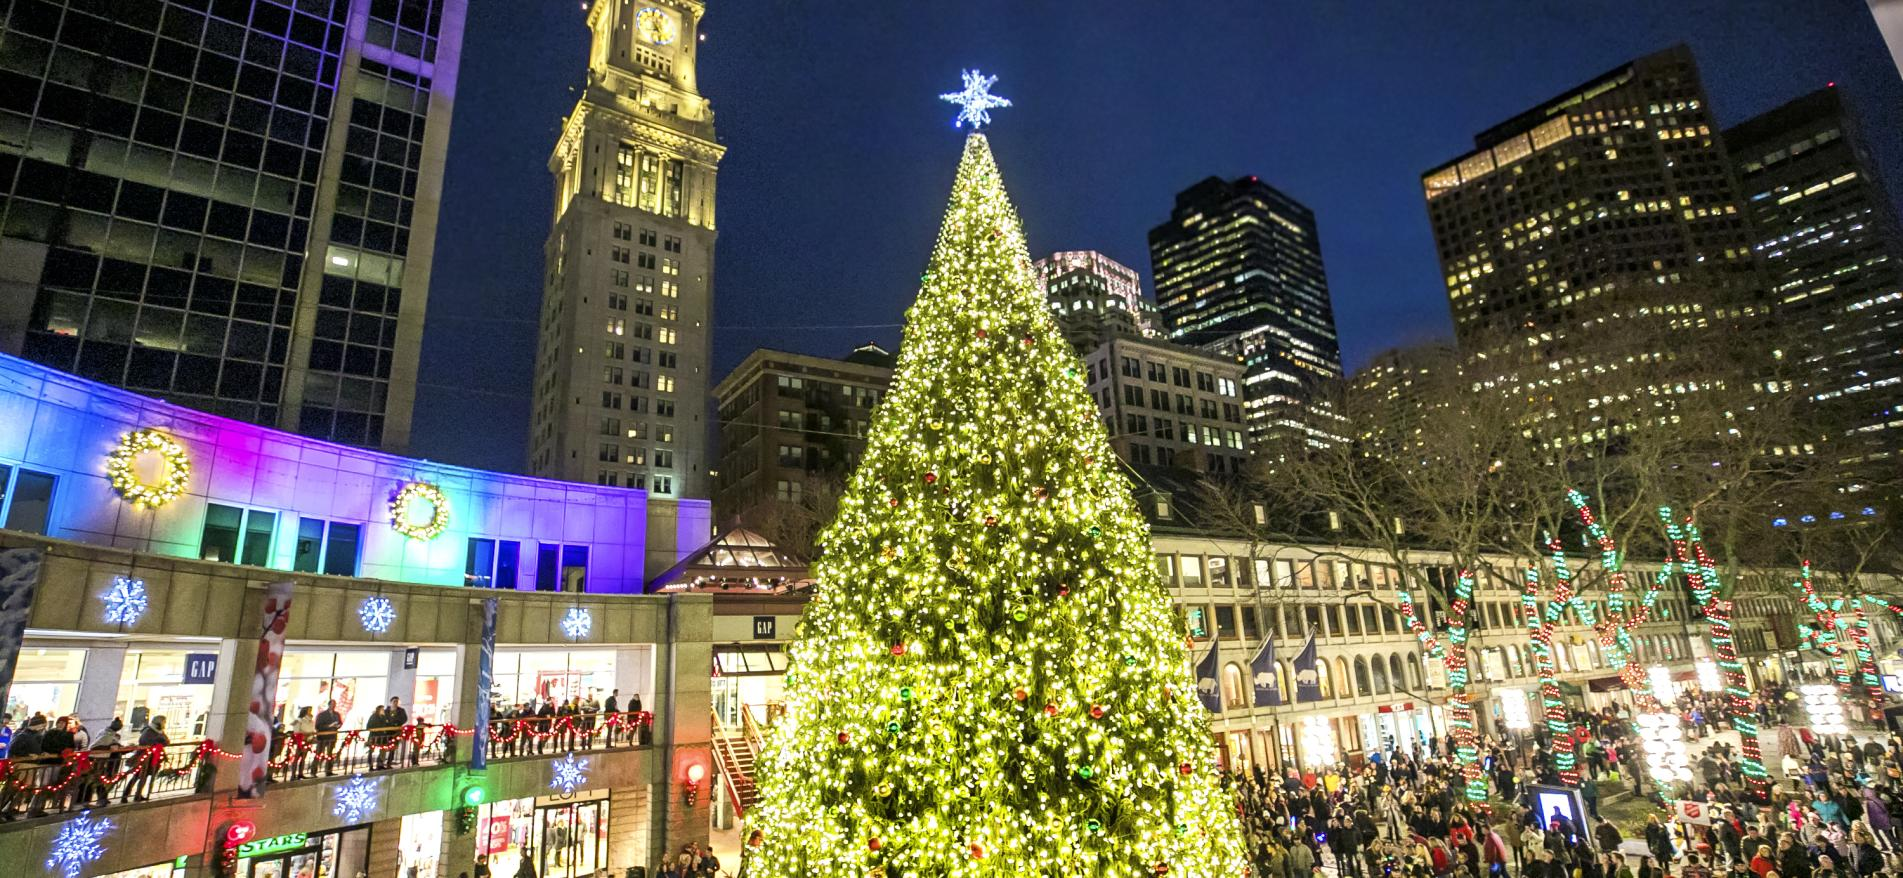 Boston Christmas Market 2020 Boston's Holiday Season | Christmas and NYE Events